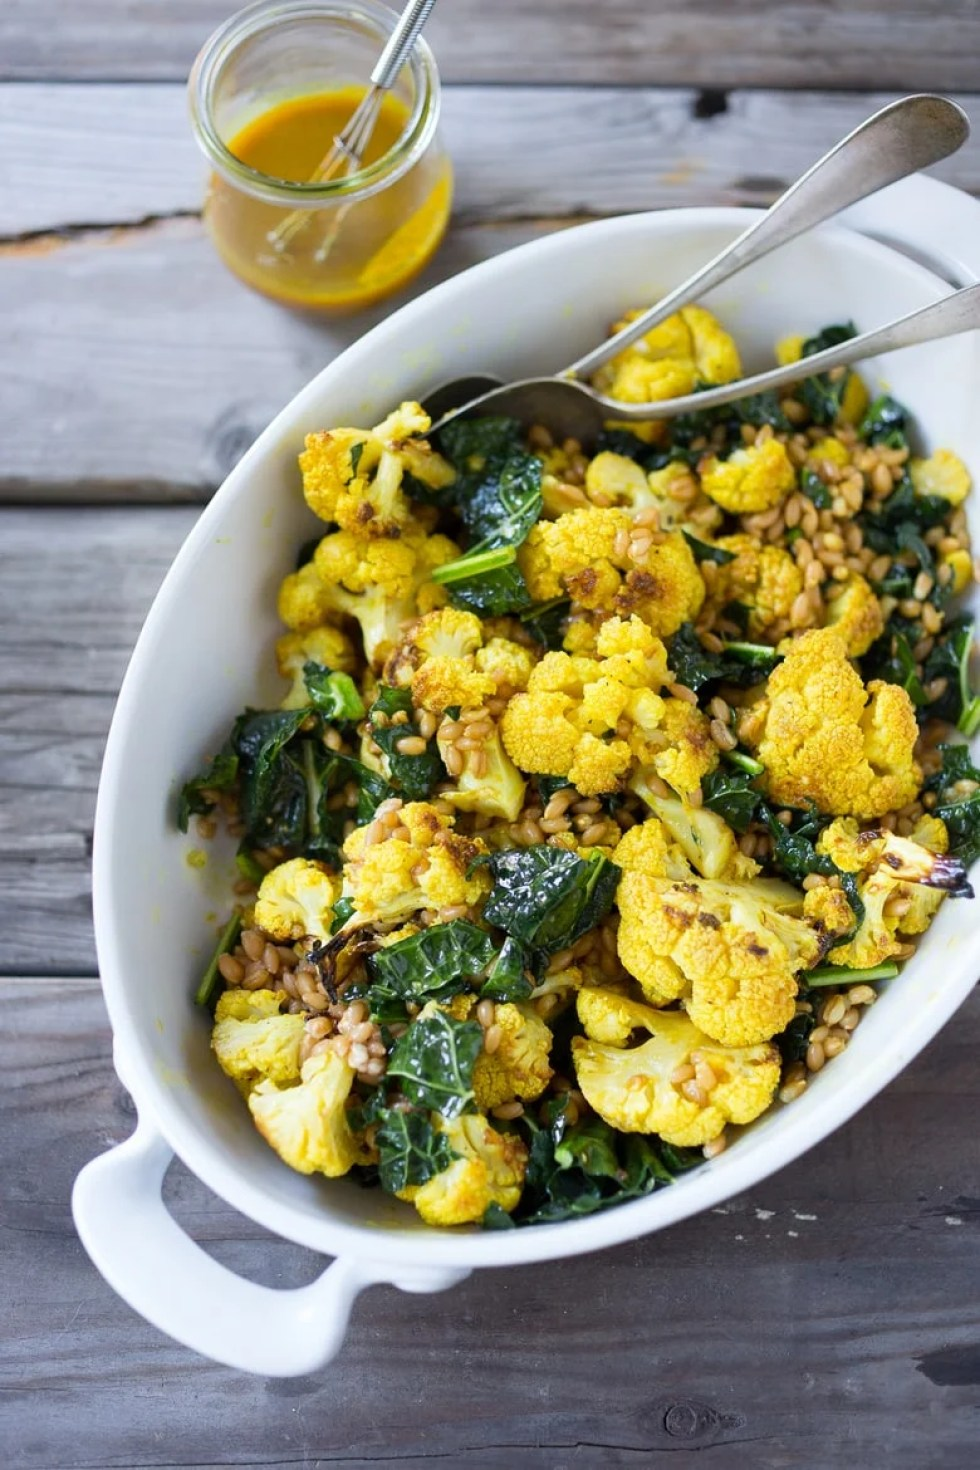 10 Simple Powerful Turmeric Recipes to Heal, Sooth and Protect | Add fresh turmeric to dressings for a punch of flavor and anti-oxidants | Roasted cauliflower salad with Turmeric Dressing | www.feastingathome.com